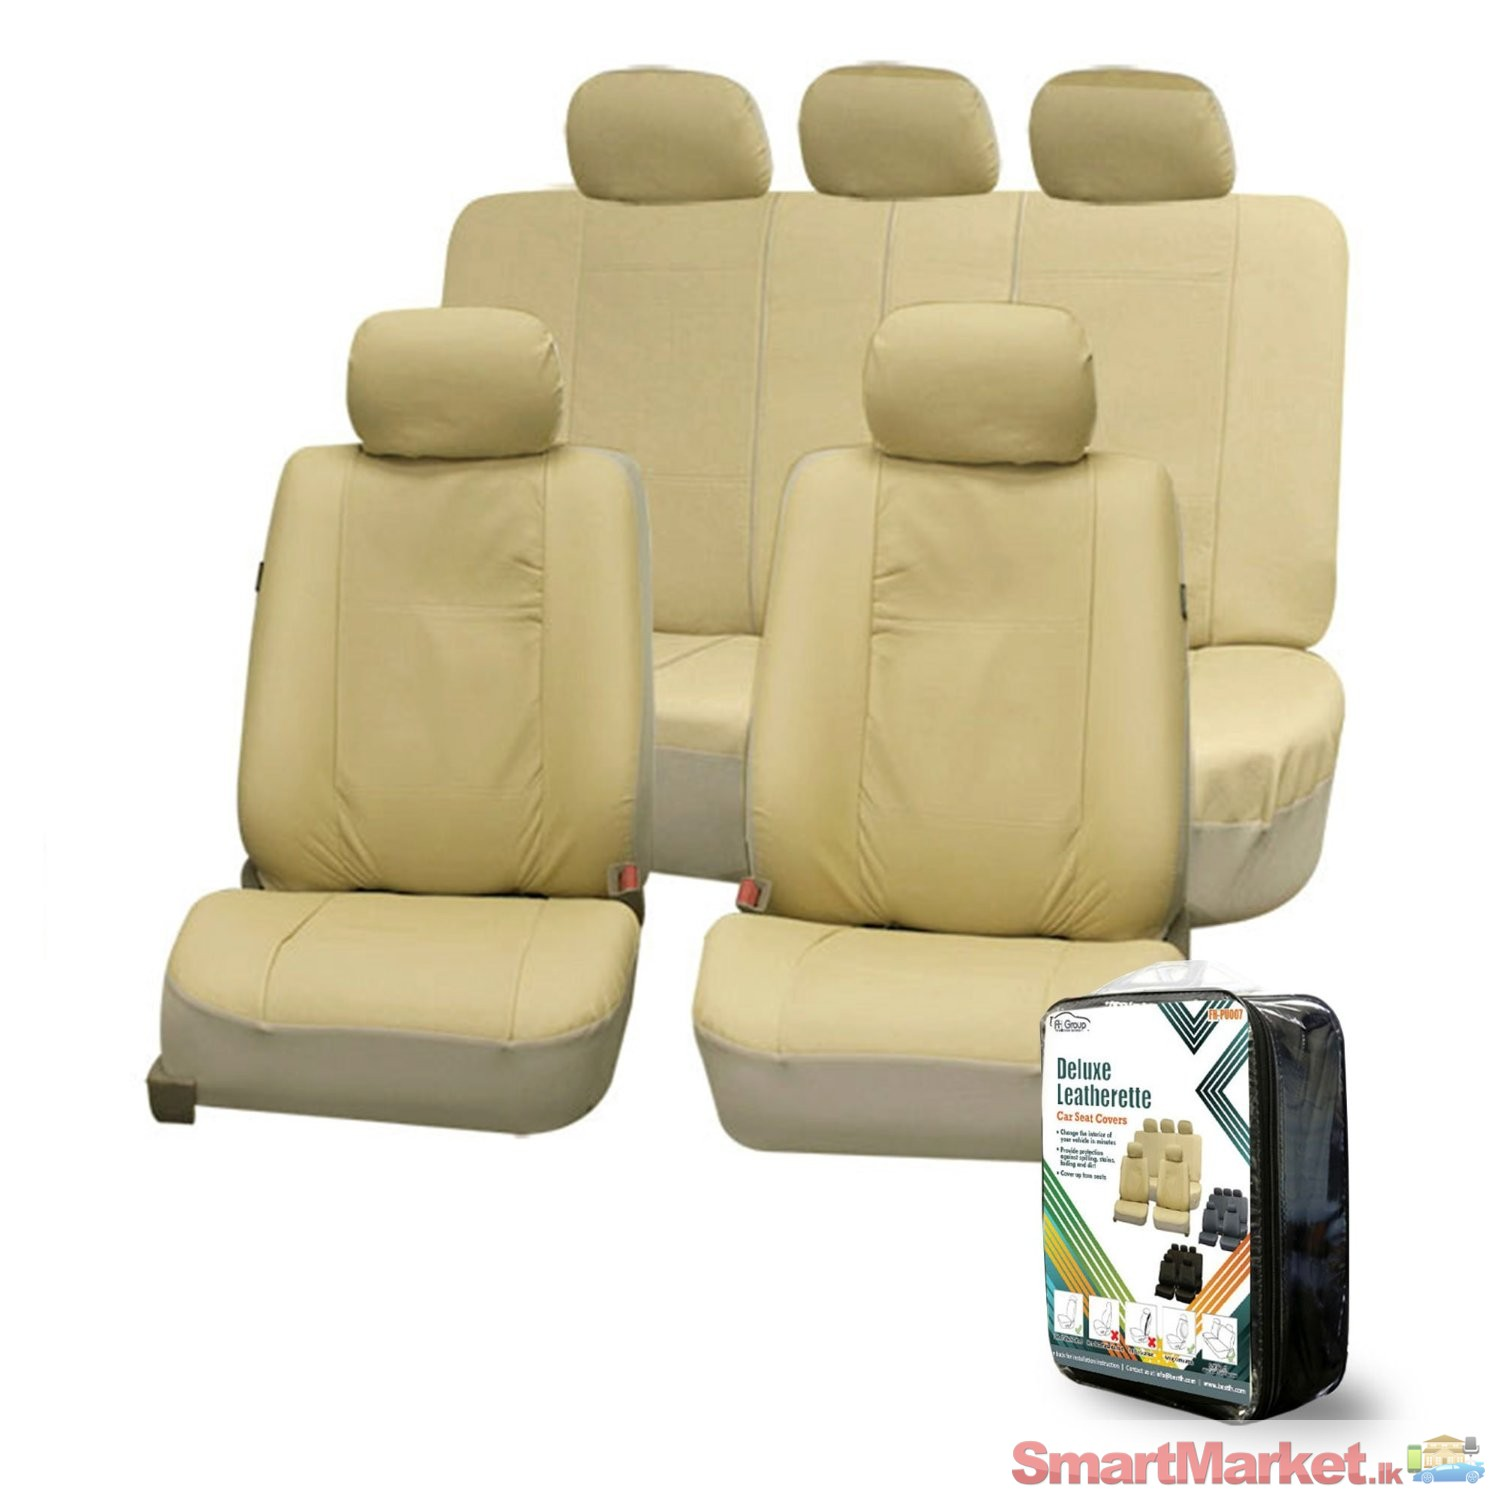 Car Seat Covers For Sale In Kalutara